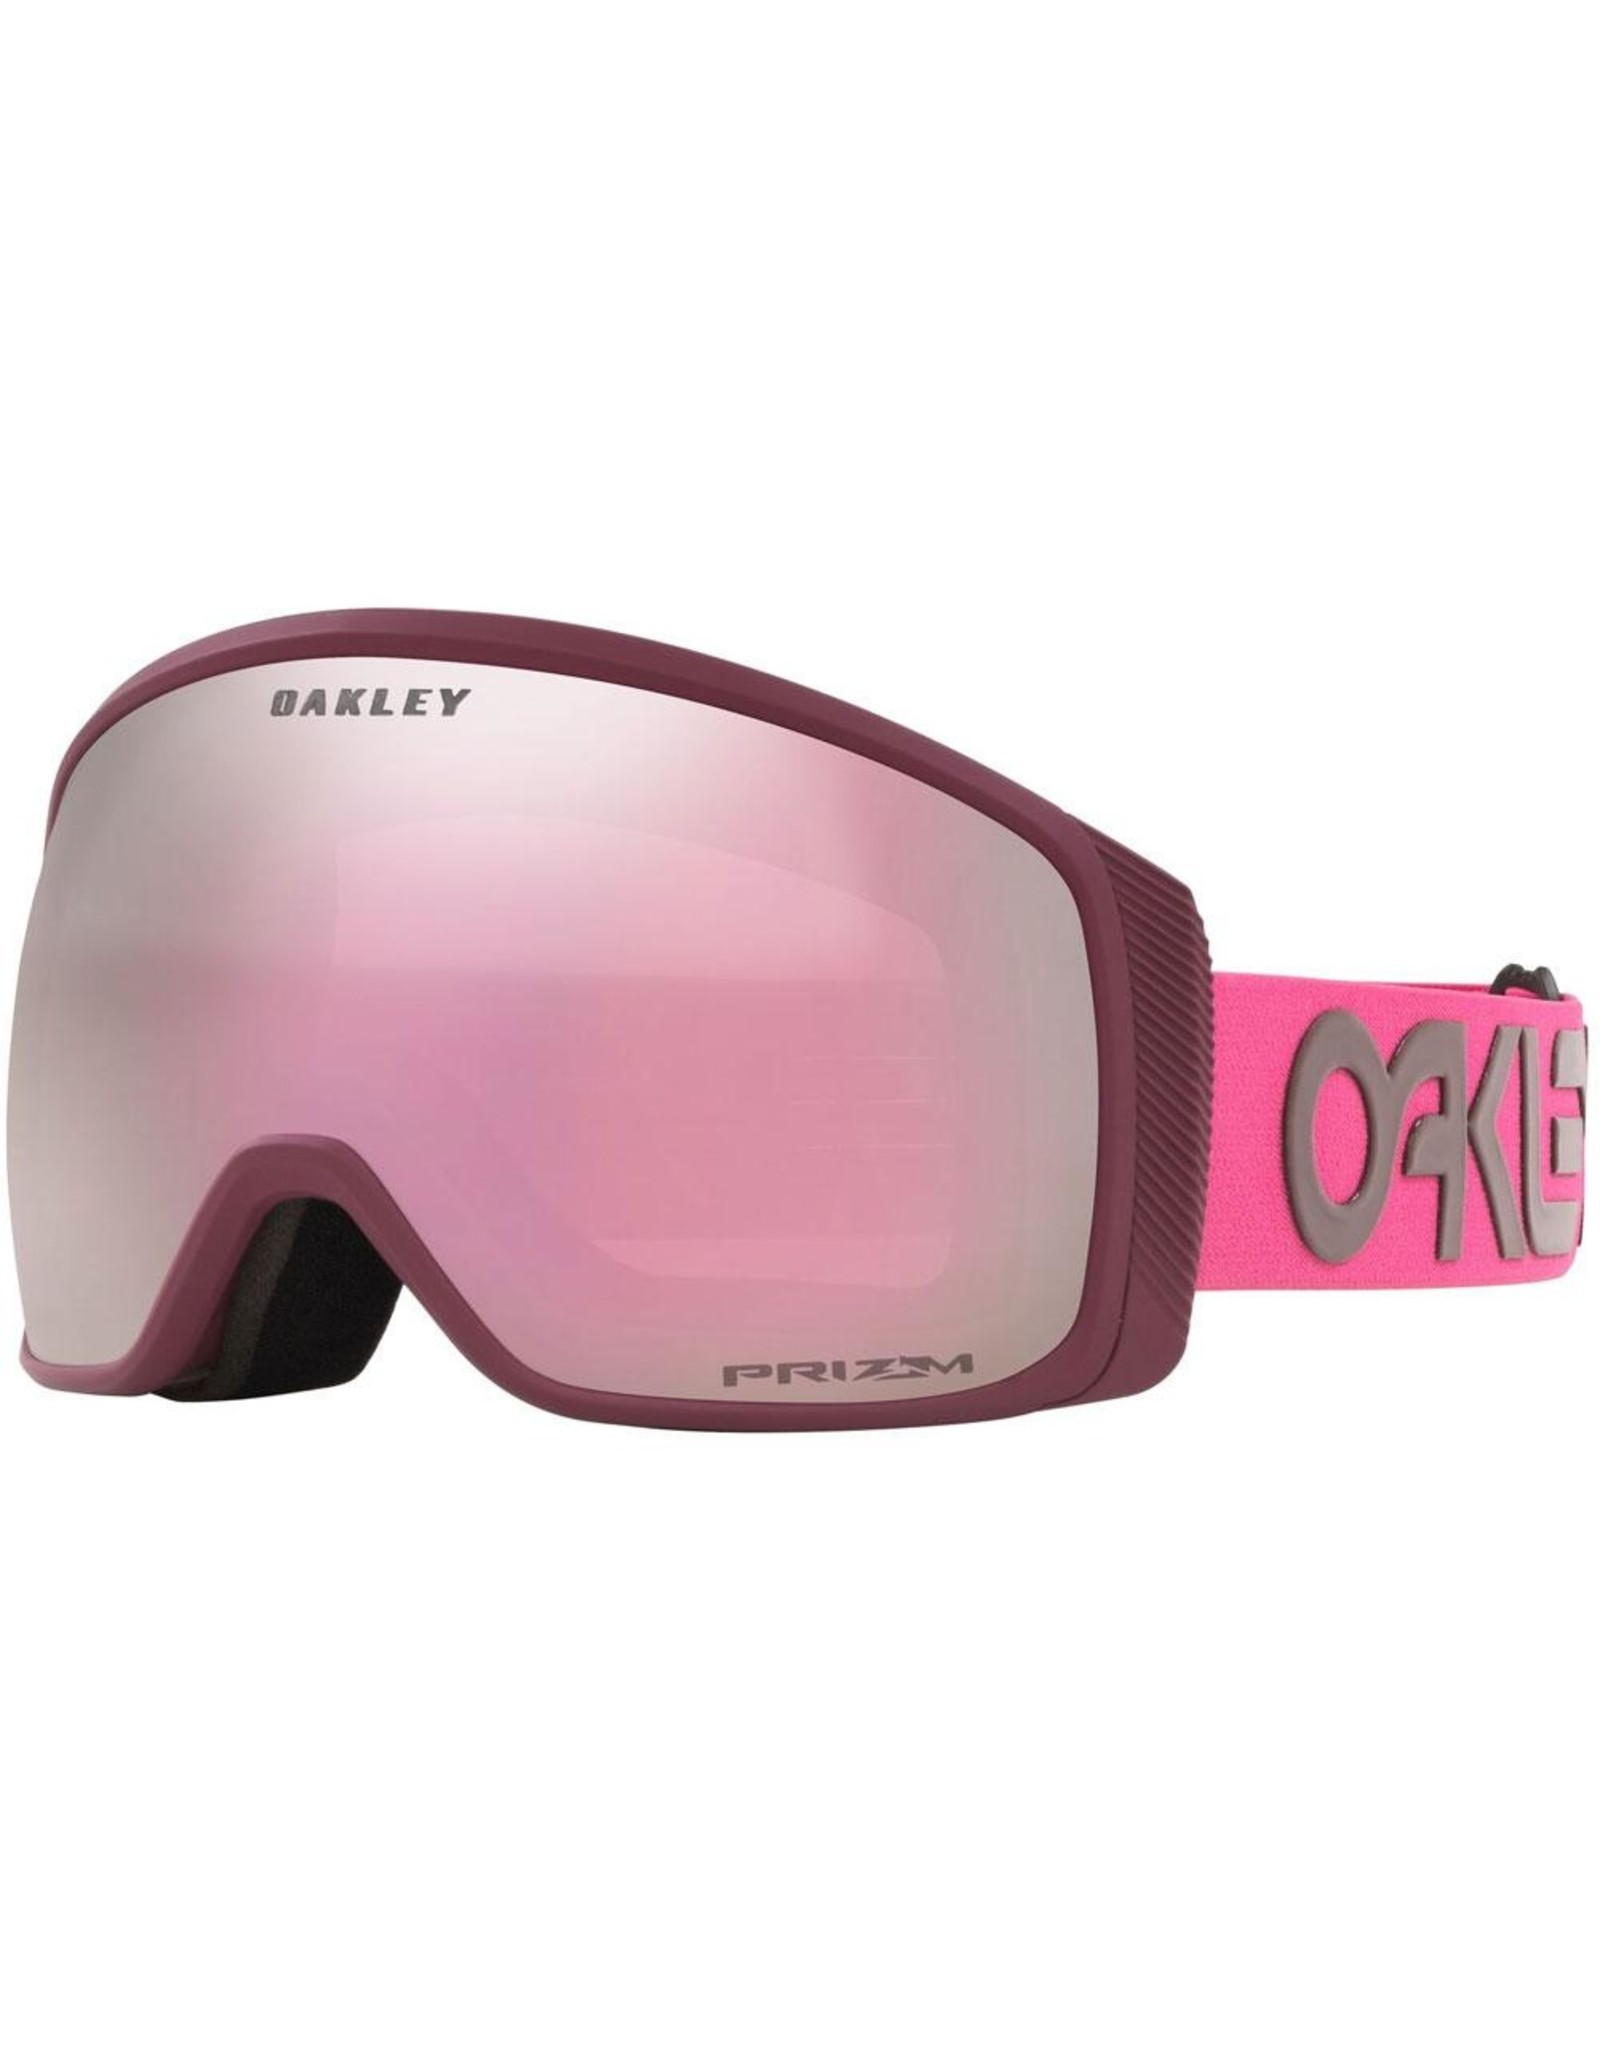 OAKLEY Flight Tracker XM FP GrenacheRubineRed wPrzmHIPnk W21